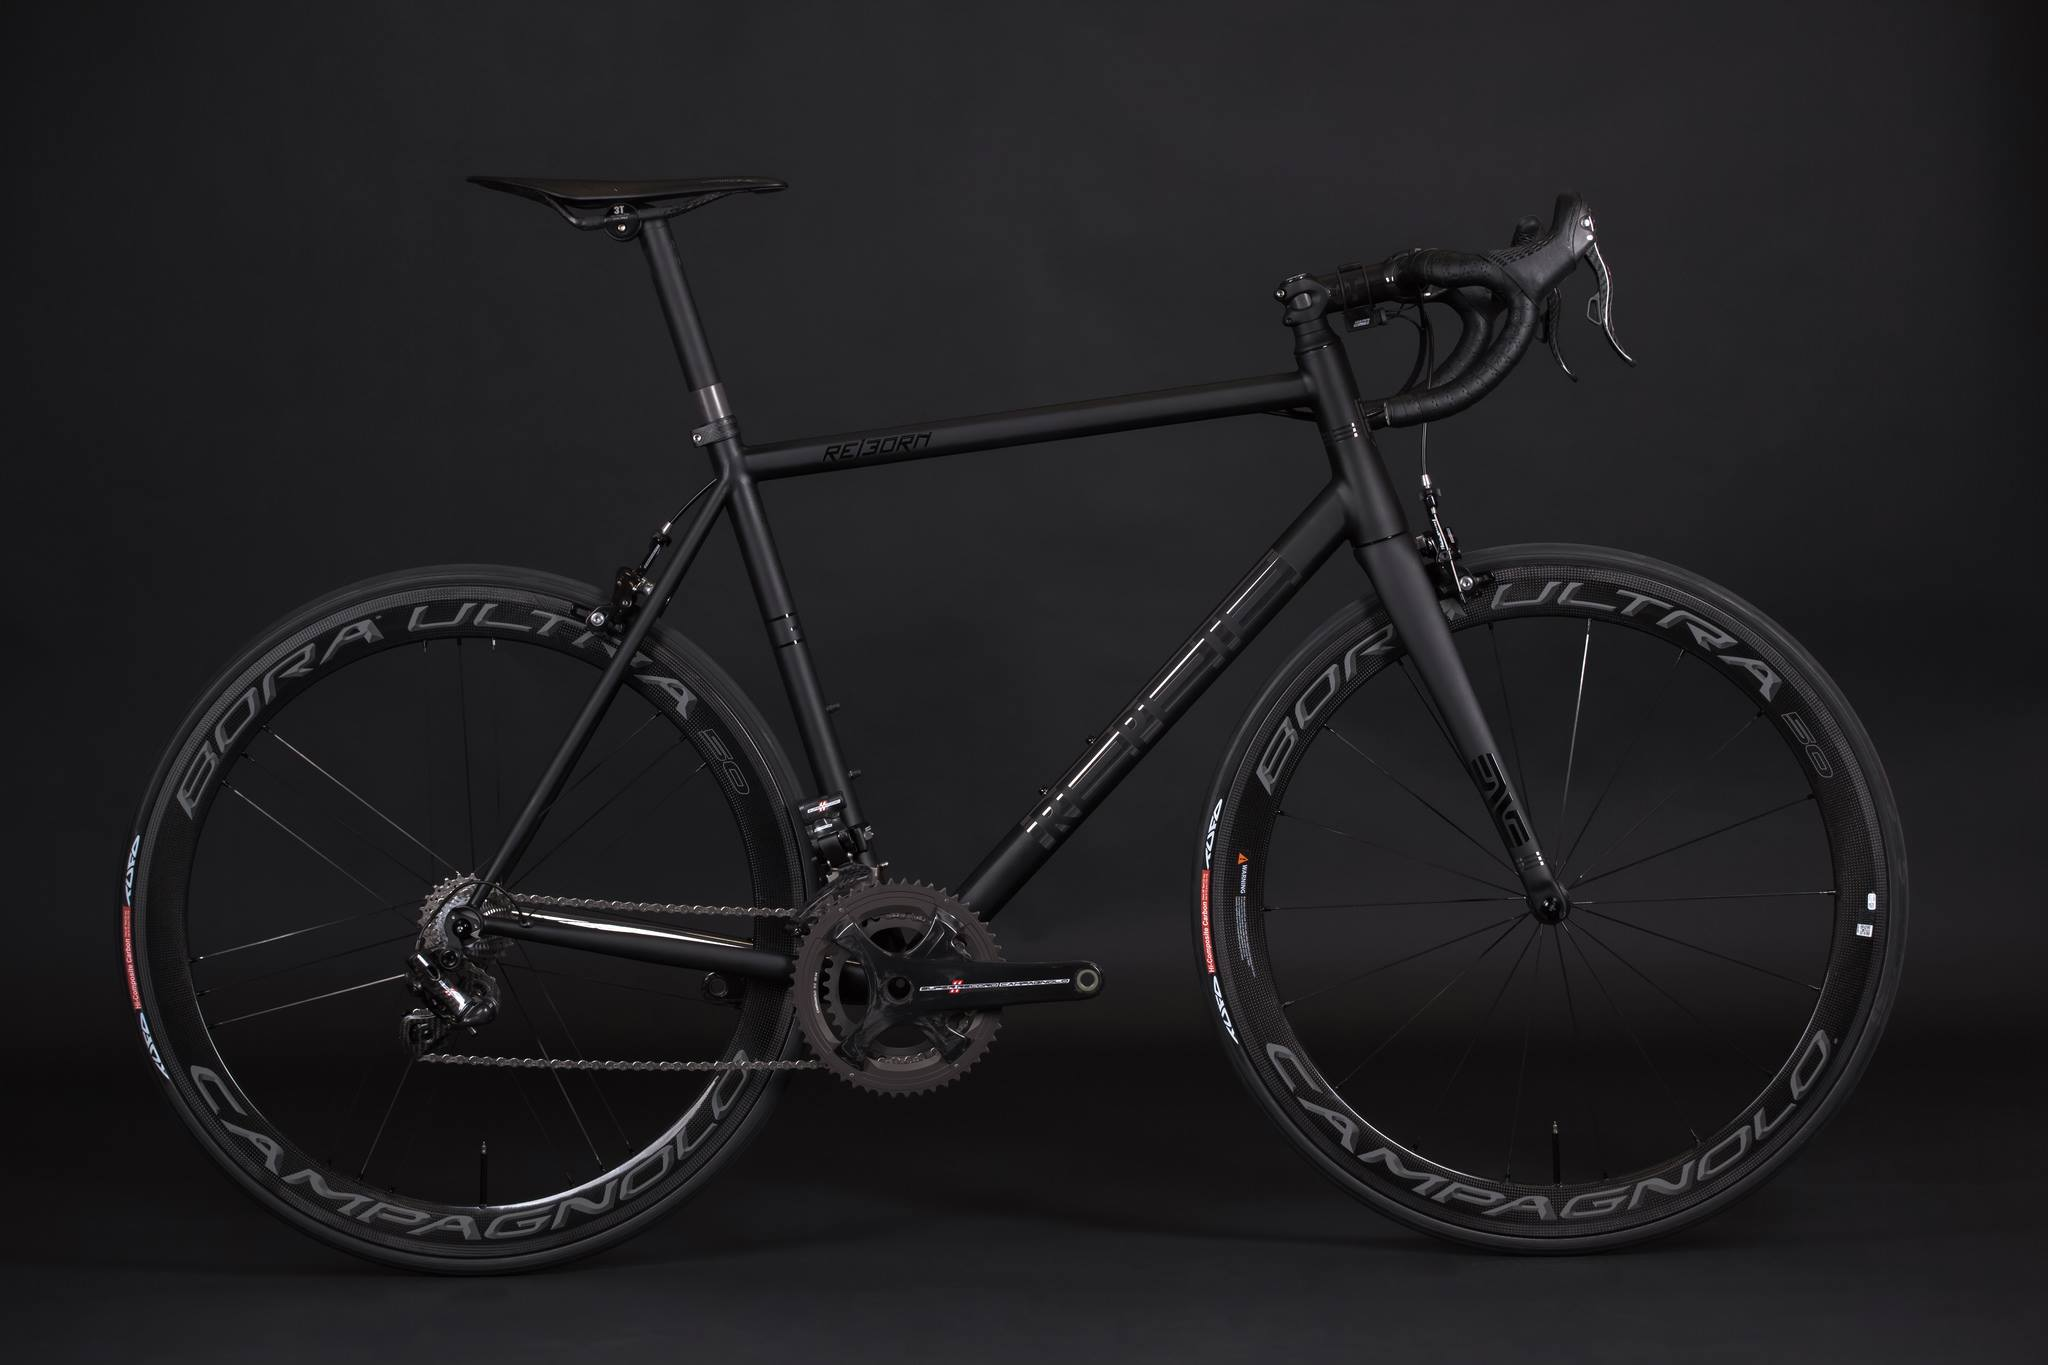 REPETE REborn, NAHBS 2015 Best Road Bike award winner